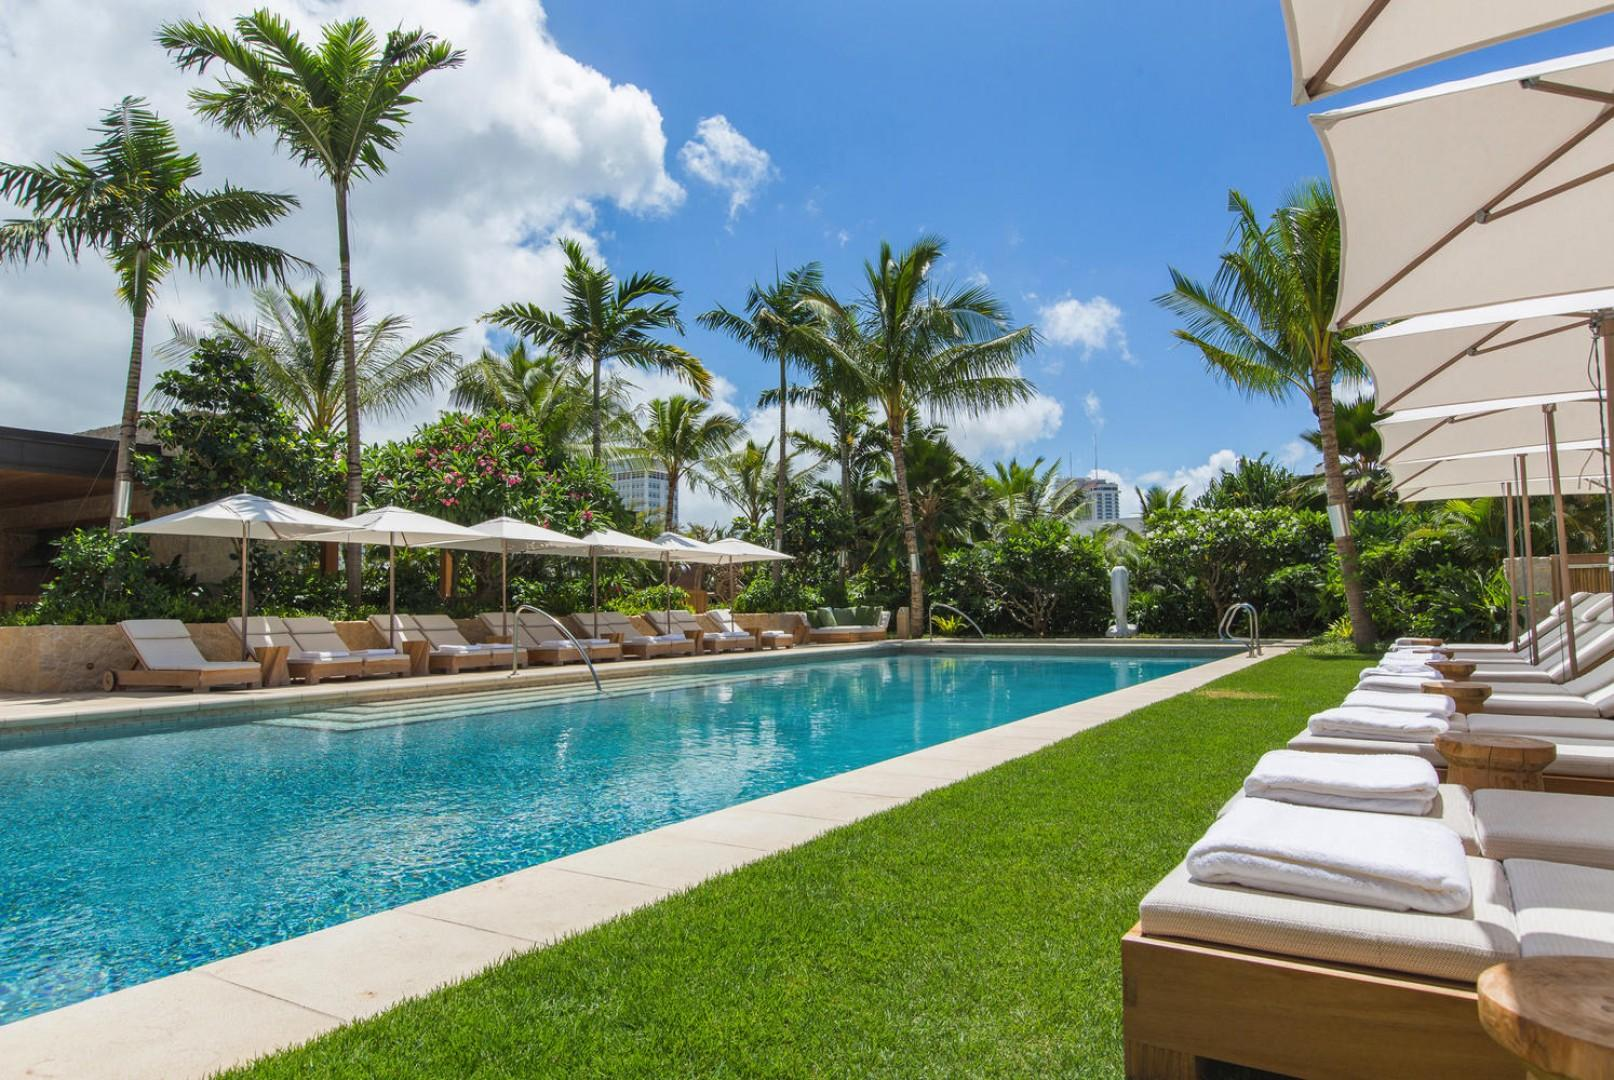 Pool Amenity Deck with Chaise Loungers